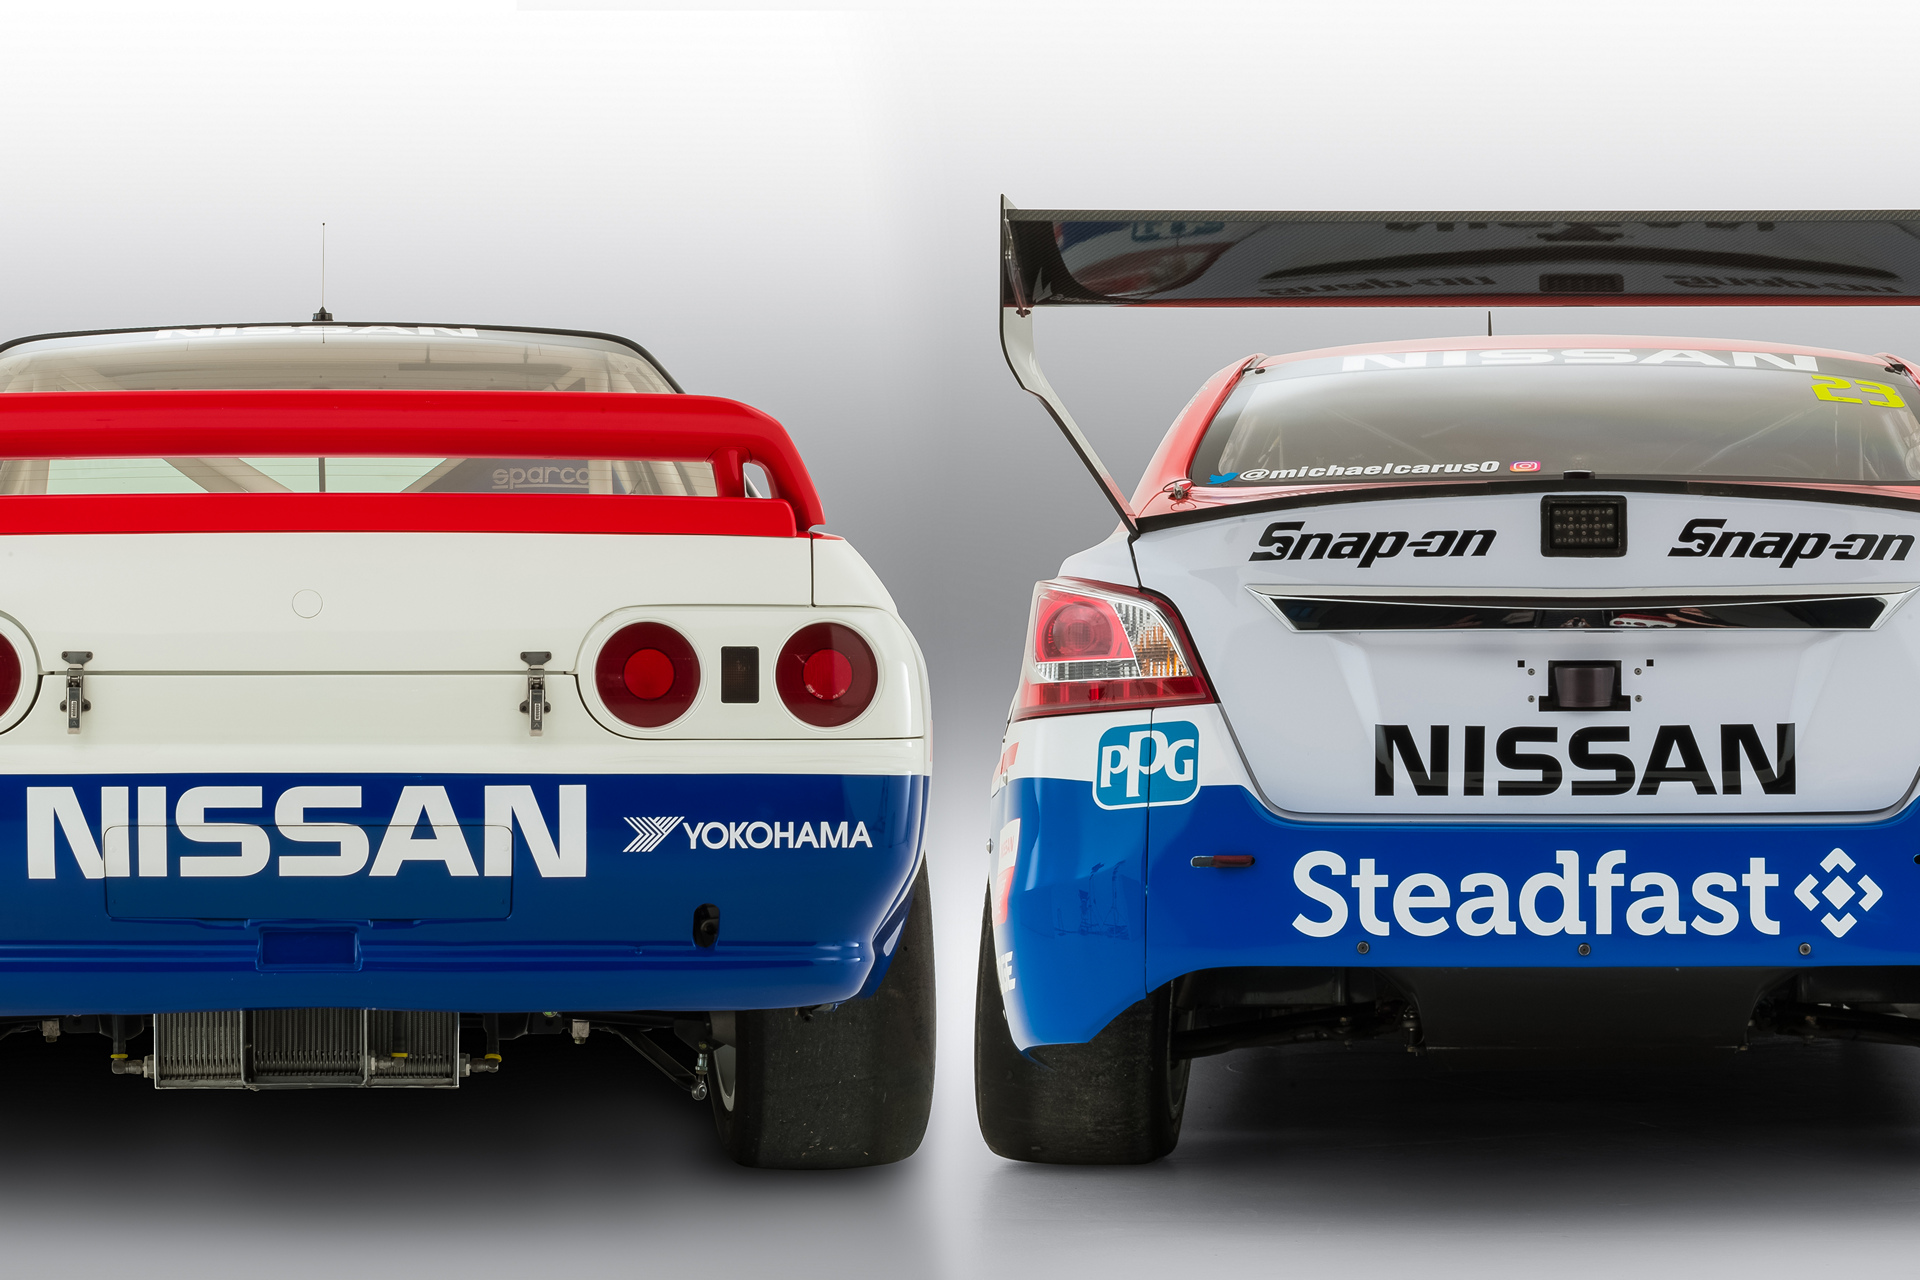 Nissan celebrates 25 years since first Bathurst 1000 victory © Nissan Motor Co., Ltd.